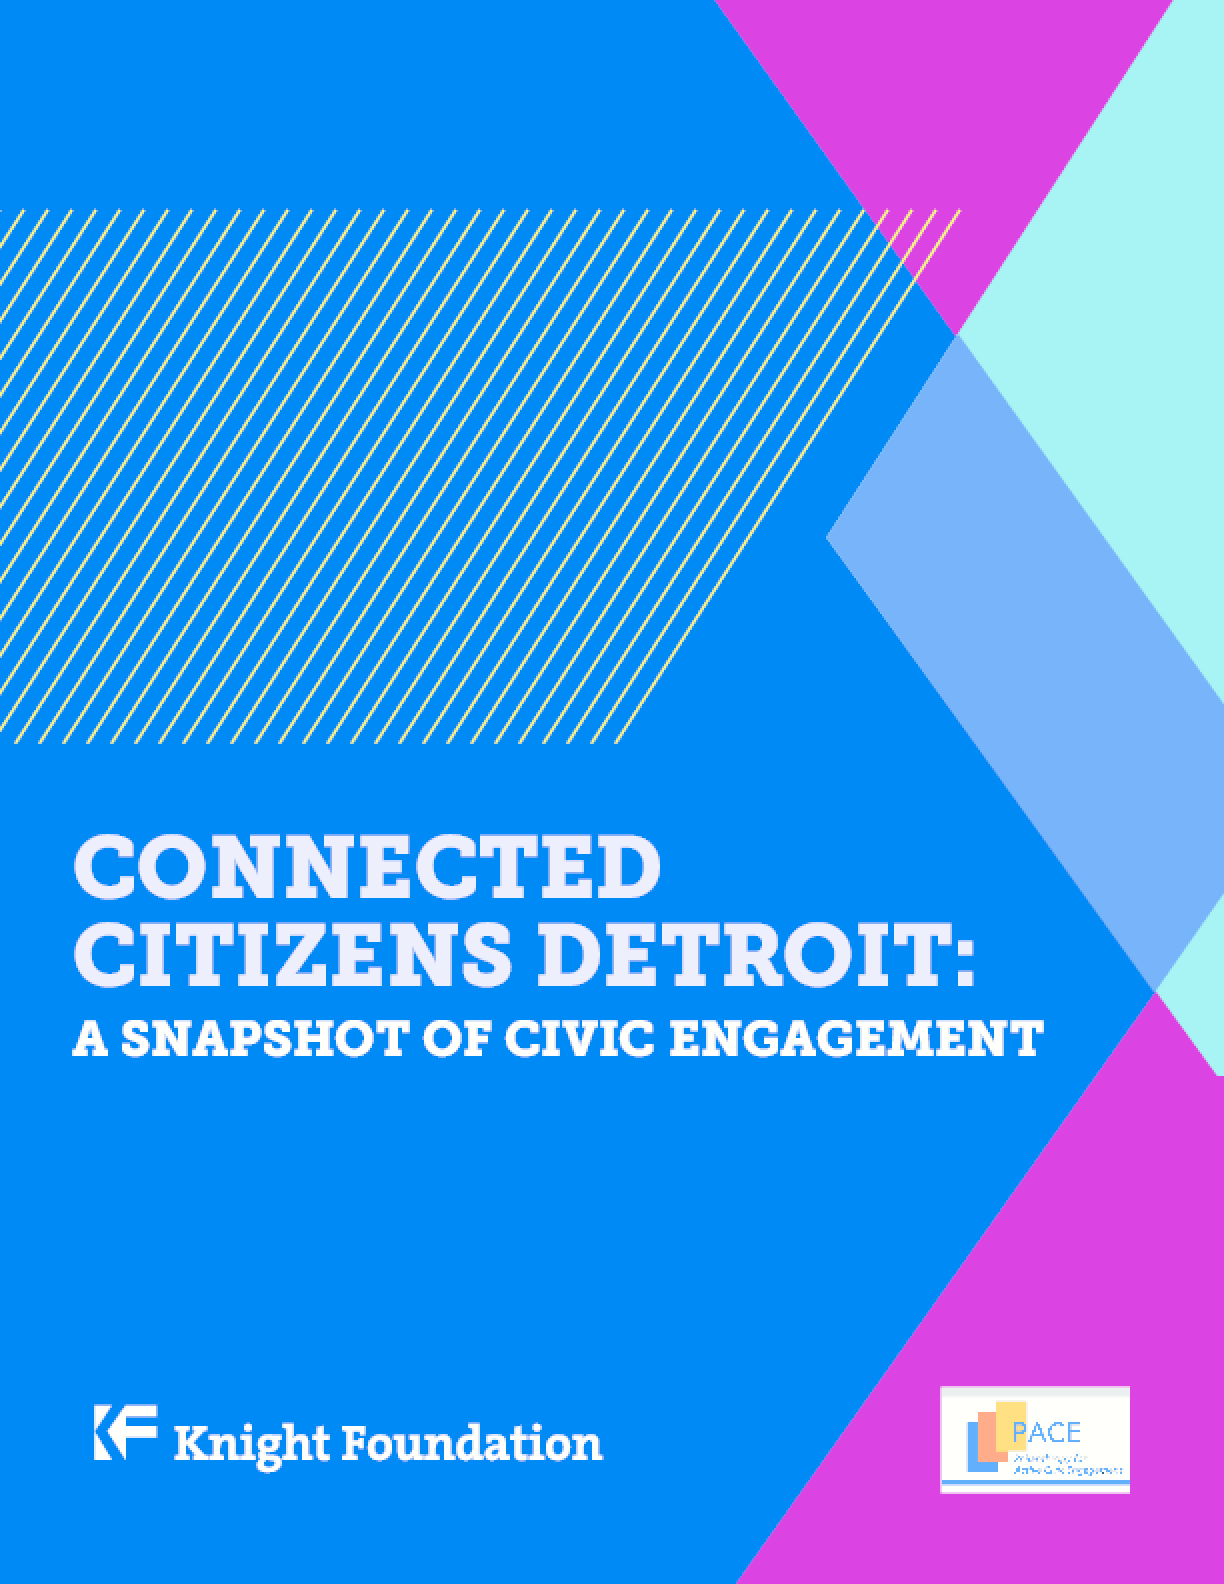 Connected Citizens Detroit: A Snapshot of Civic Engagement